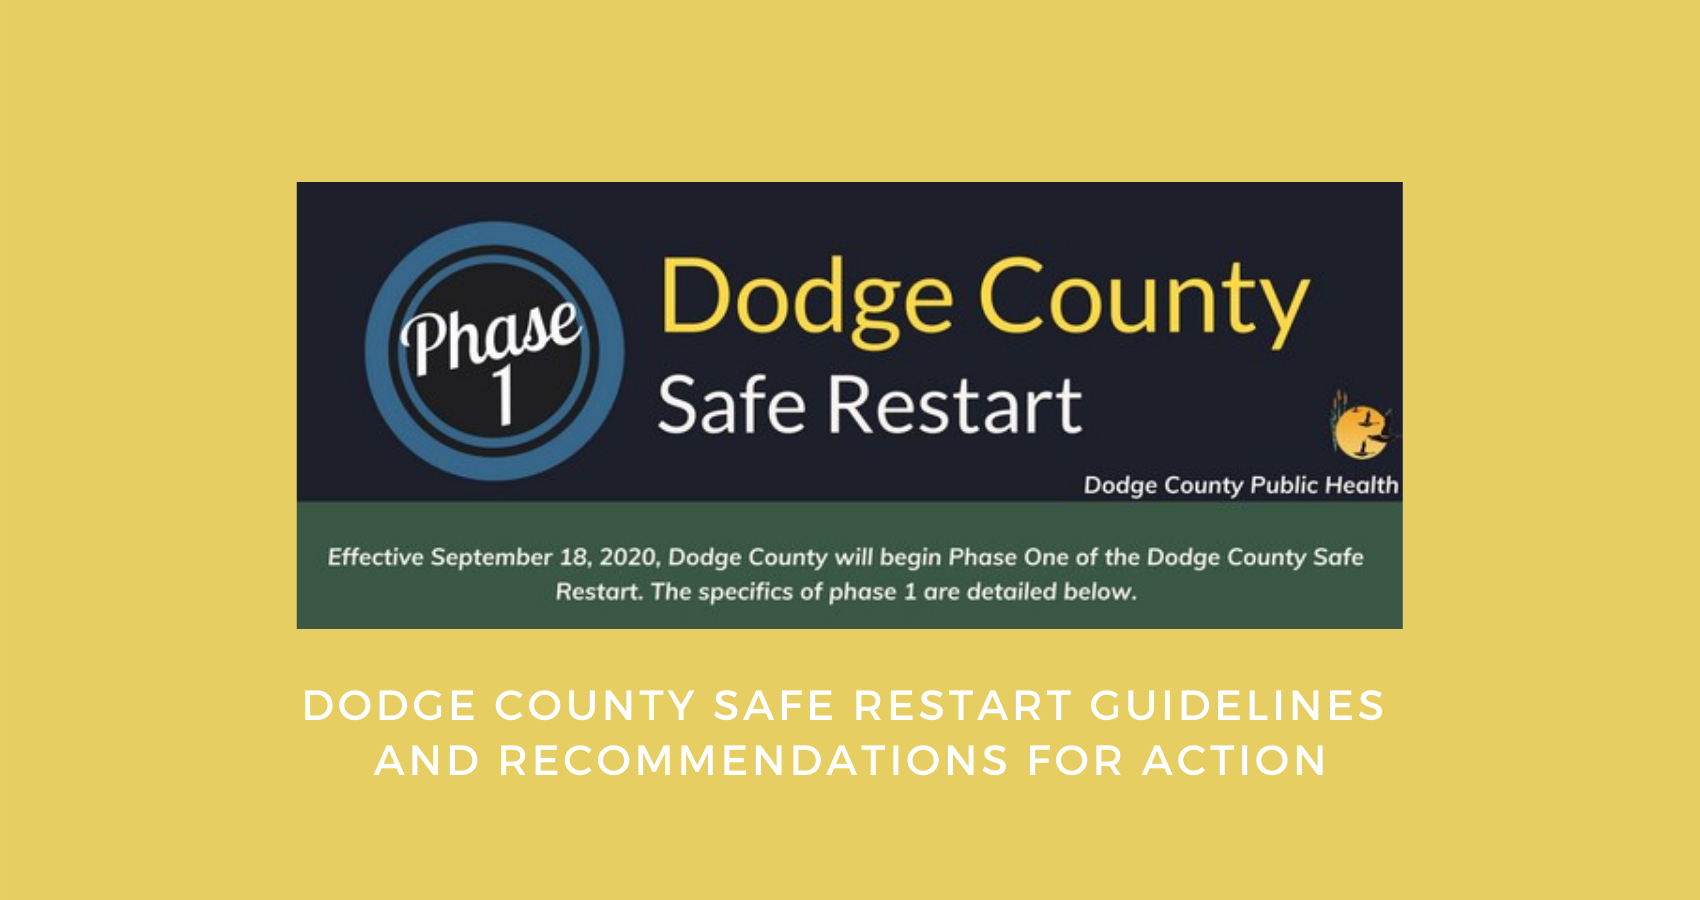 Dodge County Safe Restart Guidelines & Recommendations for Action